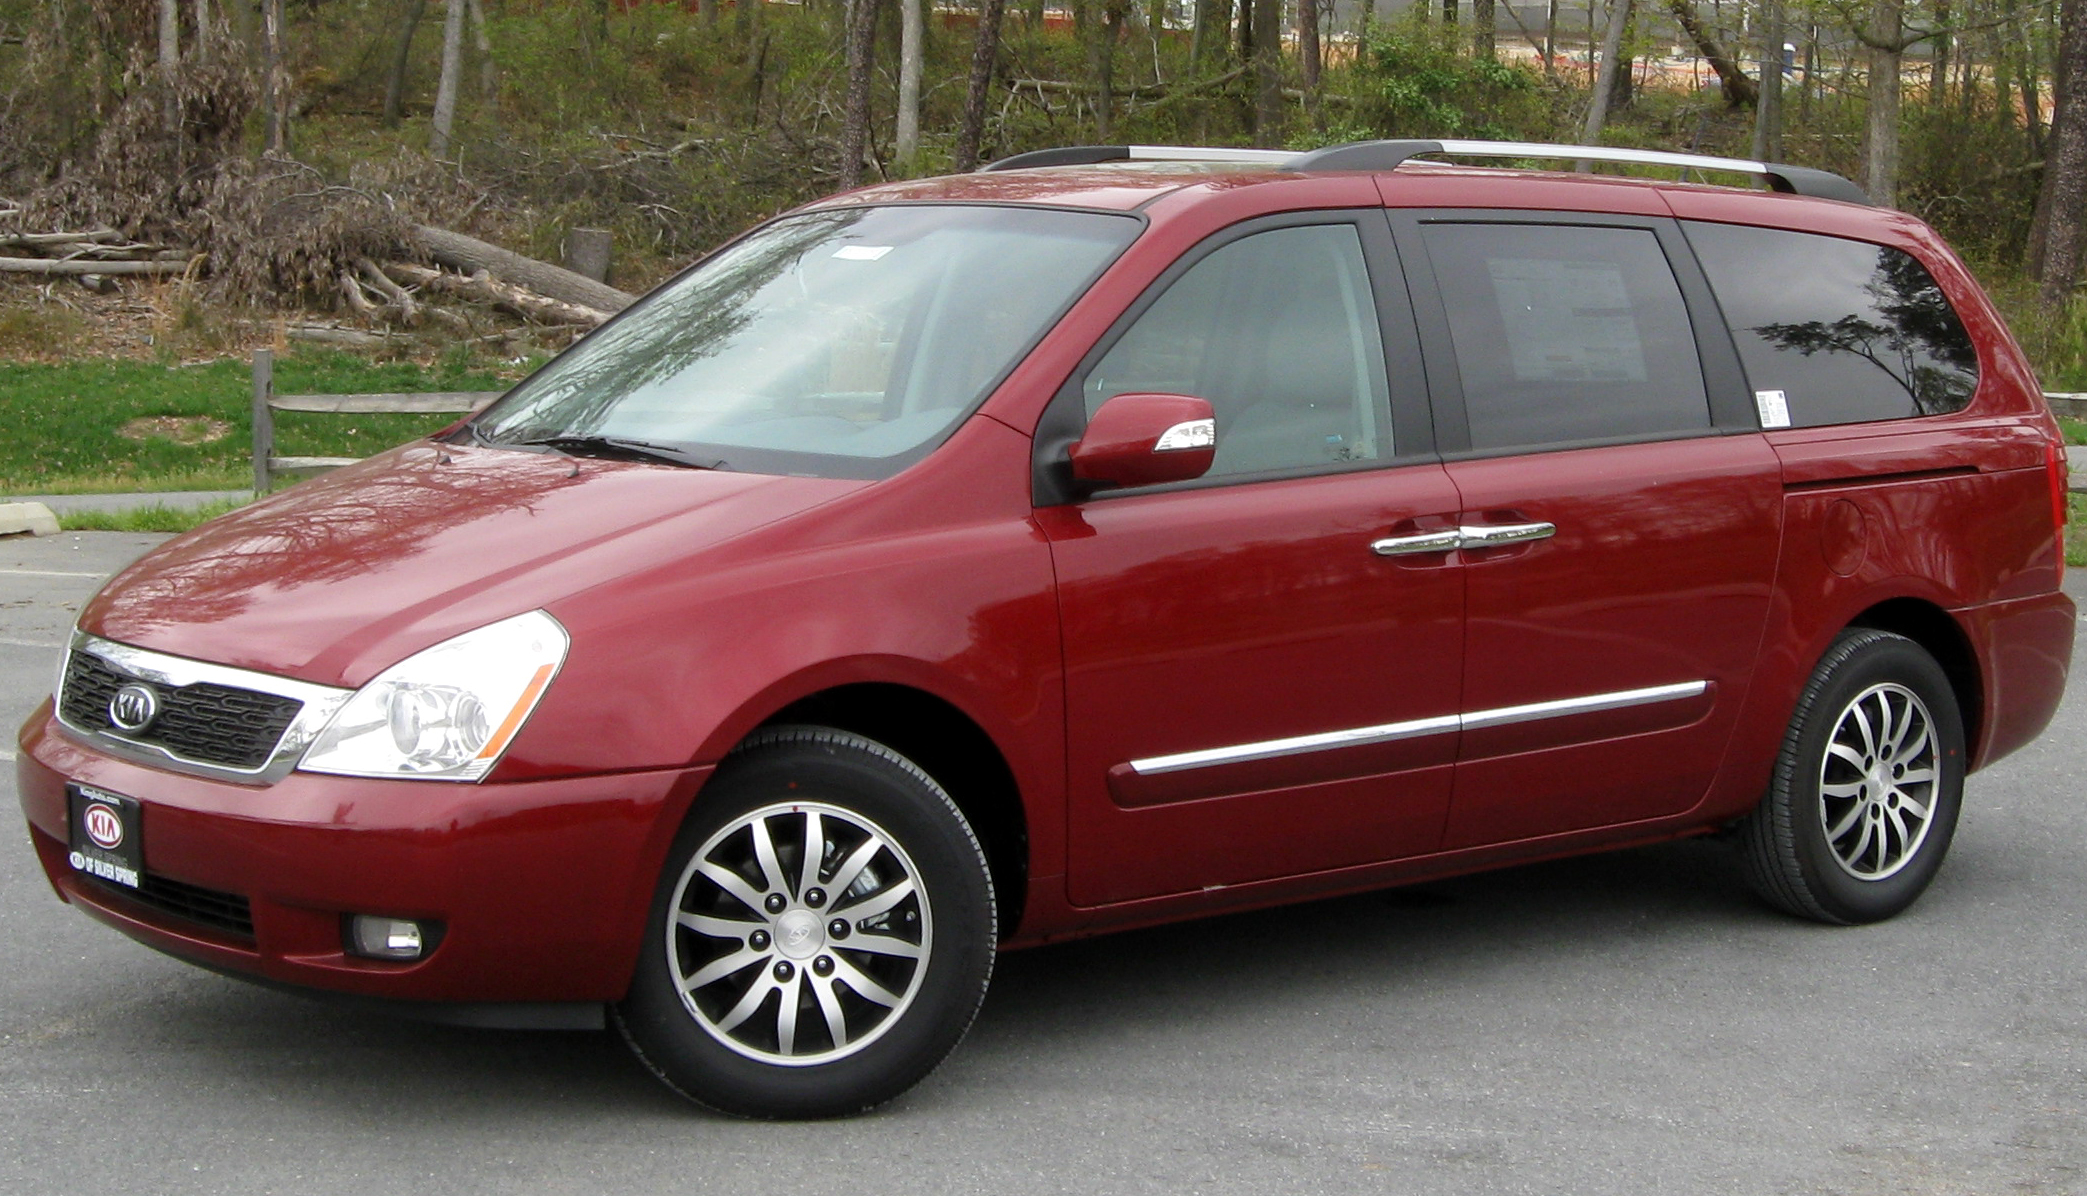 Kia Sedona 2001 photo - 2